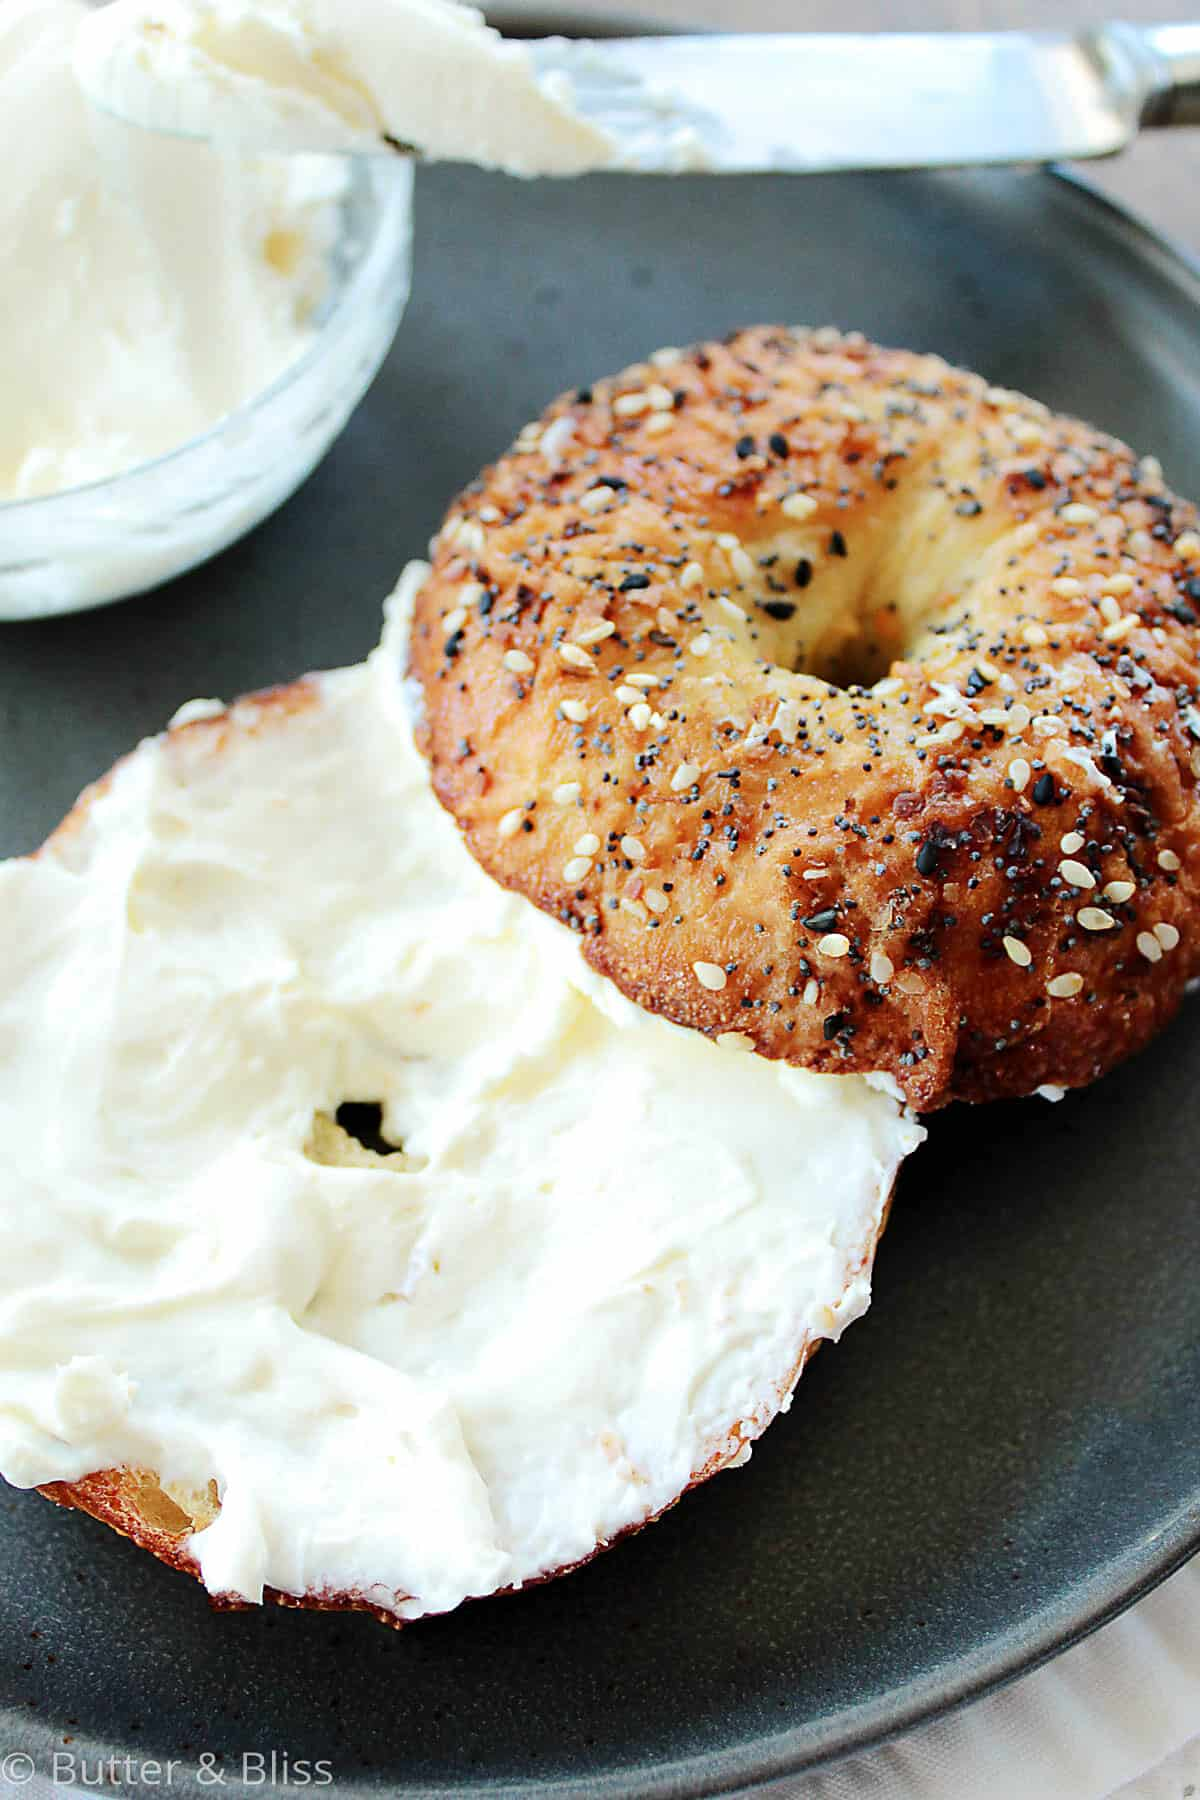 Bagel with cream cheese on a plate